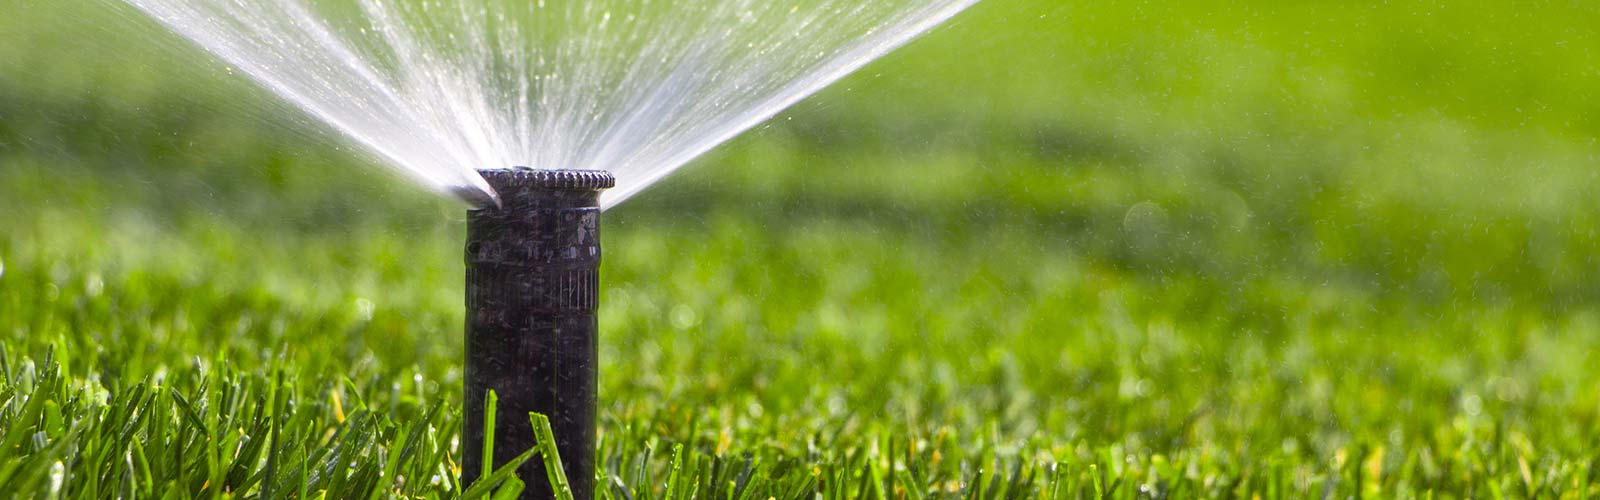 Irrigation Installation and Repair - New Braunfels, Texas